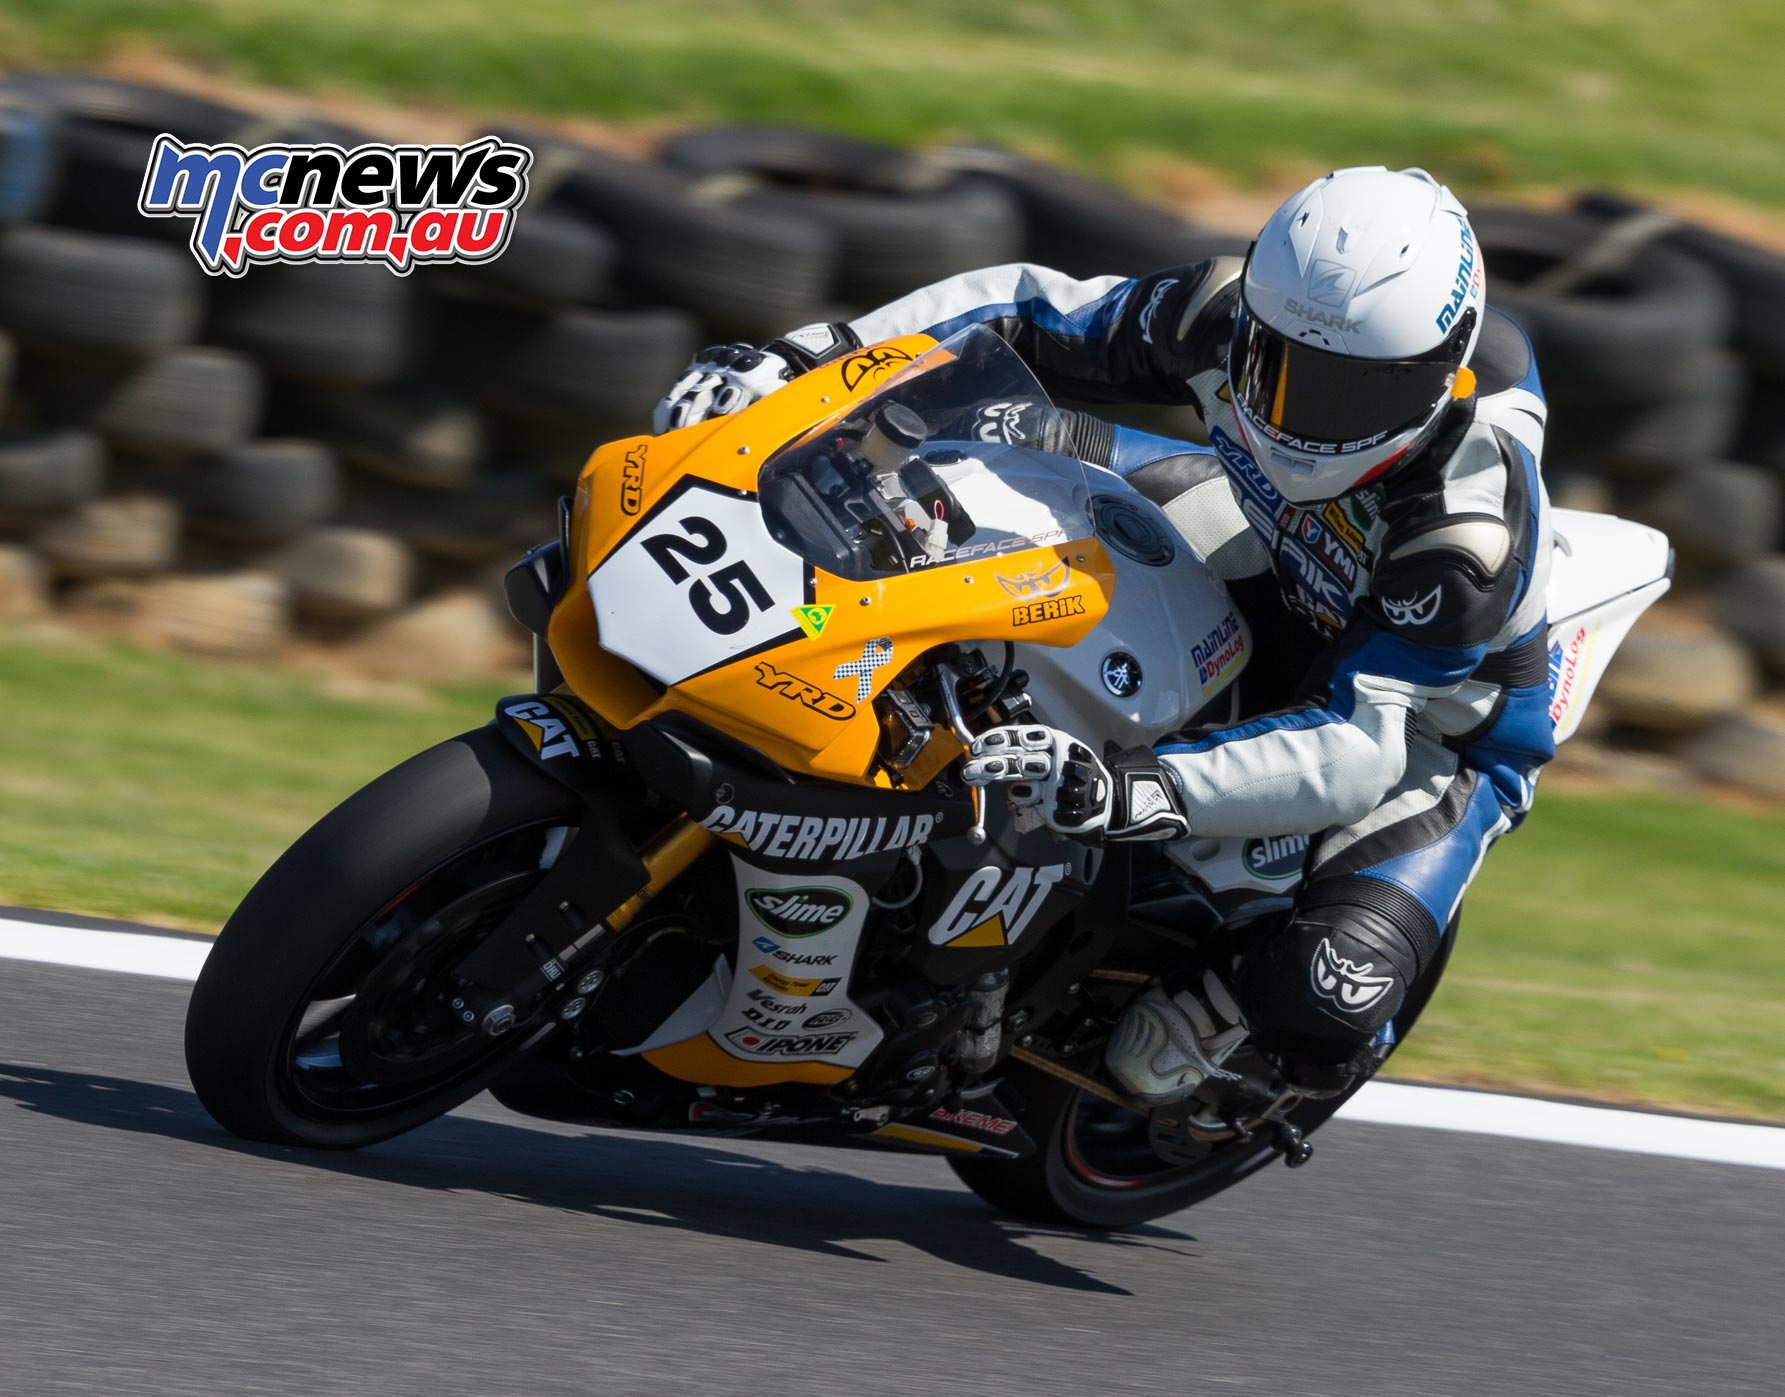 ASBK 2017 - Round Two - Phillip Island - Race Two - Image by TBG - Daniel Falzon leads